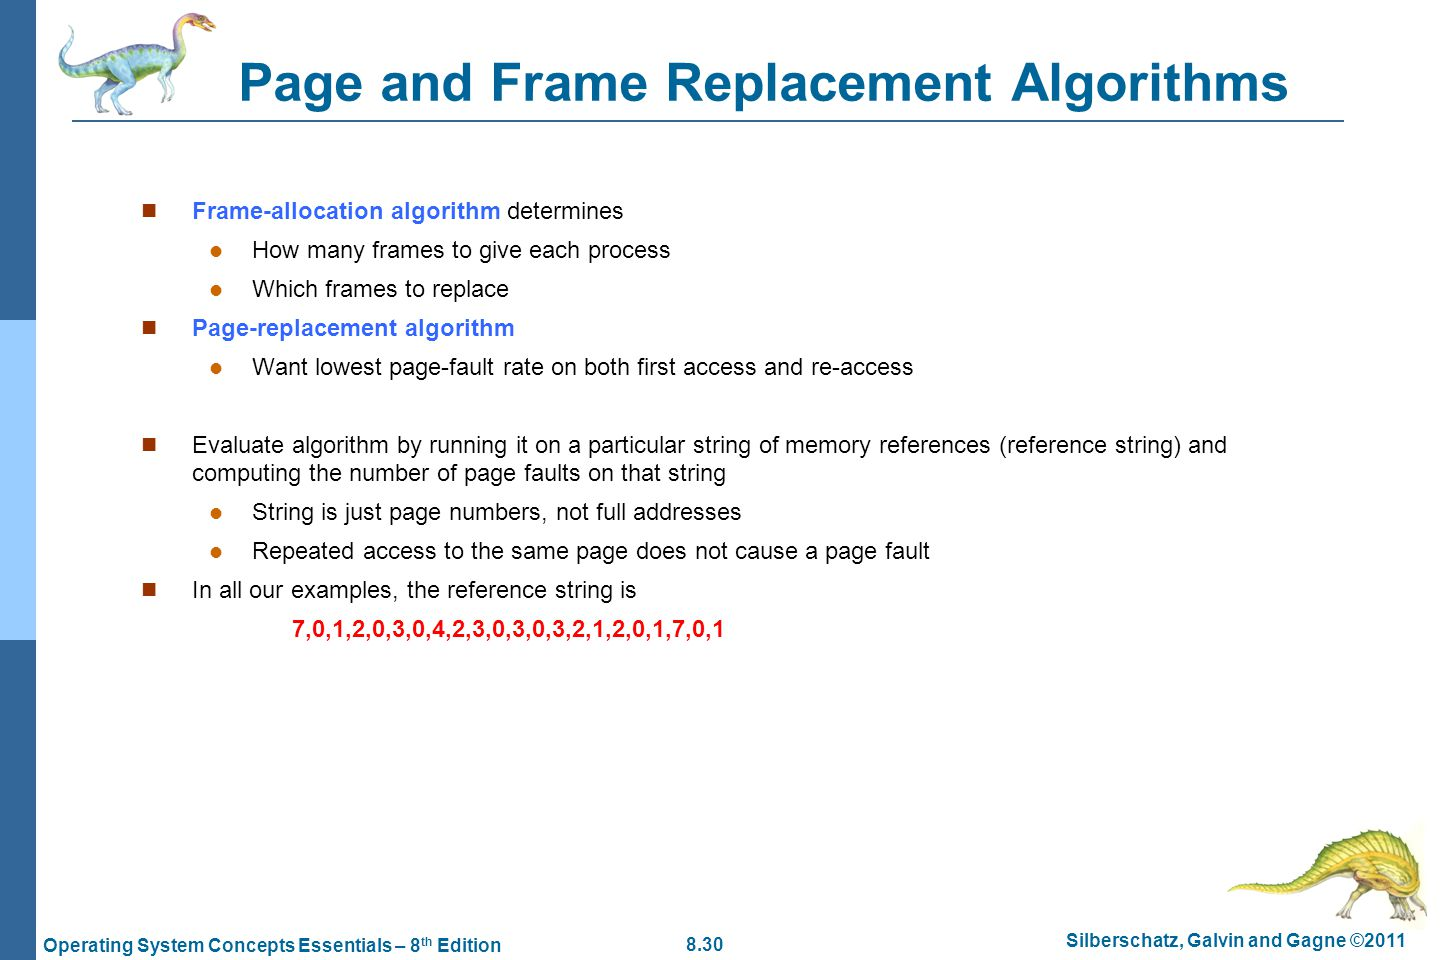 8.30 Silberschatz, Galvin and Gagne ©2011 Operating System Concepts Essentials – 8 th Edition Page and Frame Replacement Algorithms Frame-allocation a